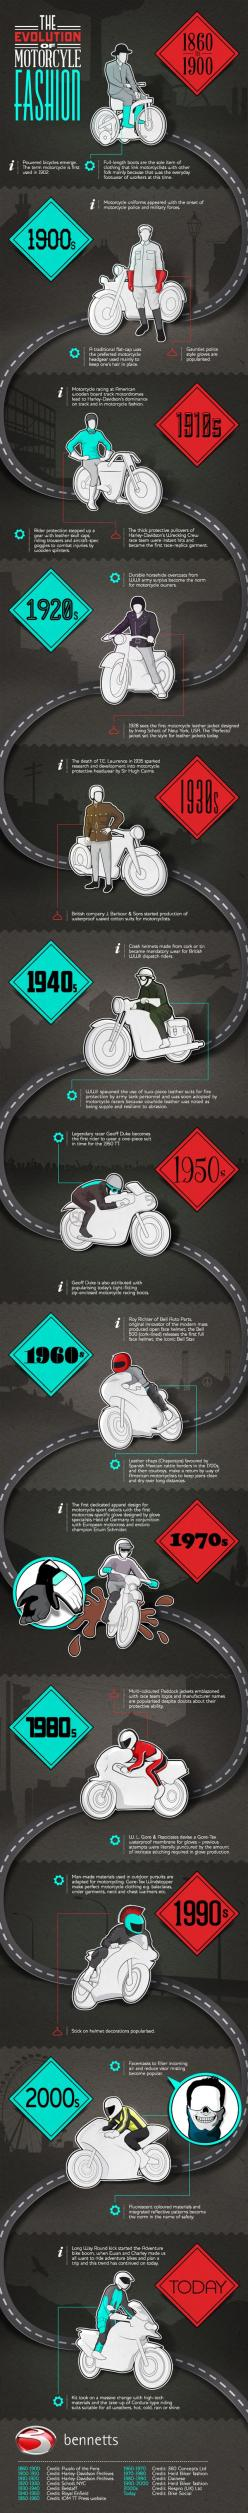 Infographic: The Evolution of #Motorcycle Gear: Motorcycle Gear, Motorcycles, Fashion Infographic, Evolution, Motorbikes Started